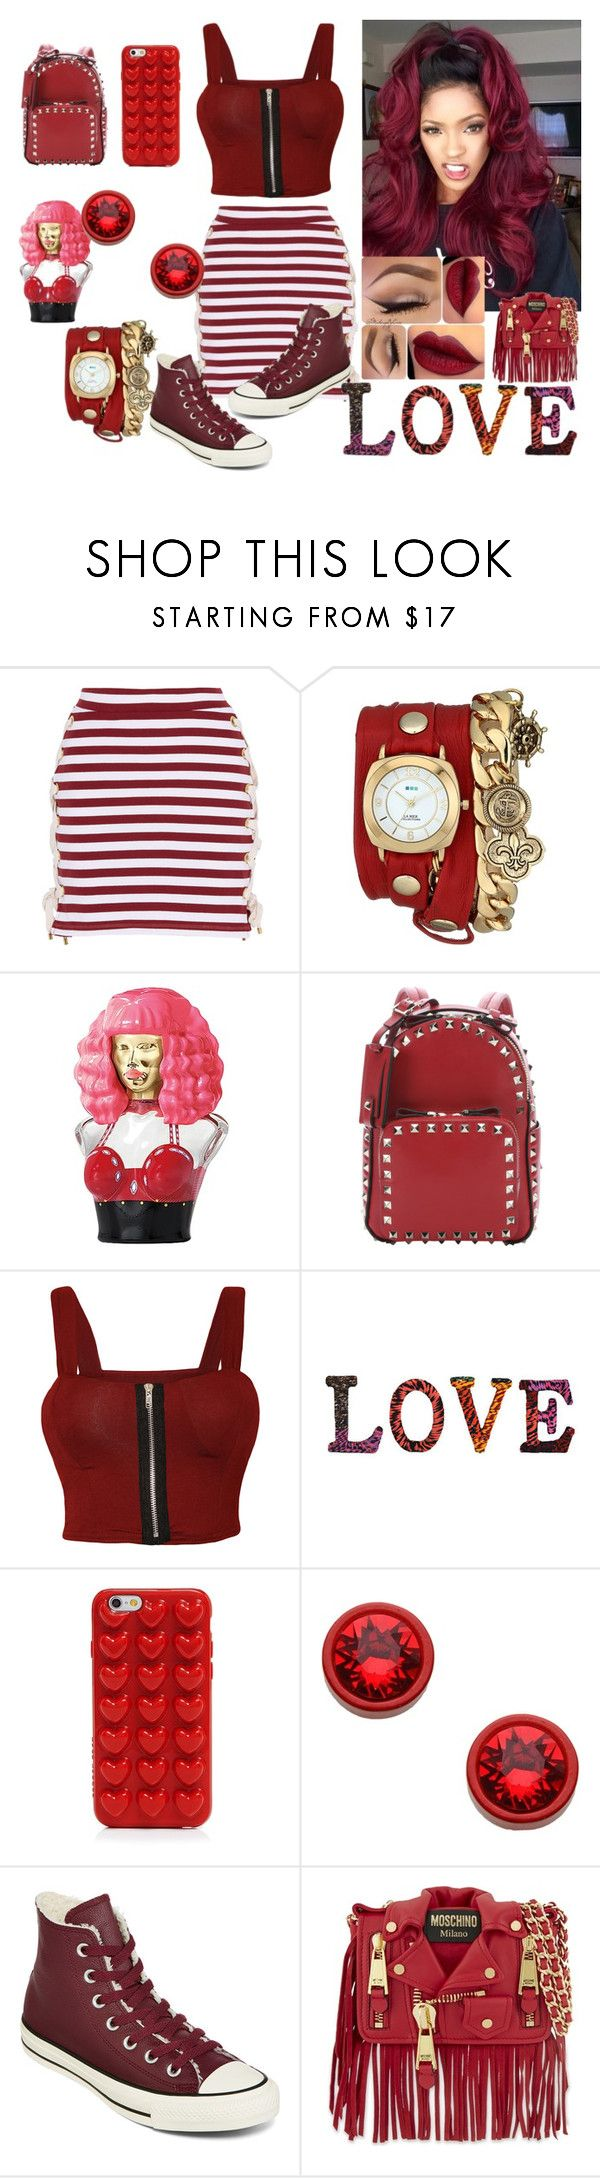 """""""Red & Sexy"""" by princess-imani-tyler on Polyvore featuring House of Holland, La Mer, Nicki Minaj, Valentino, WearAll, Dot & Bo, Marc Jacobs, Givenchy, Converse and Moschino"""